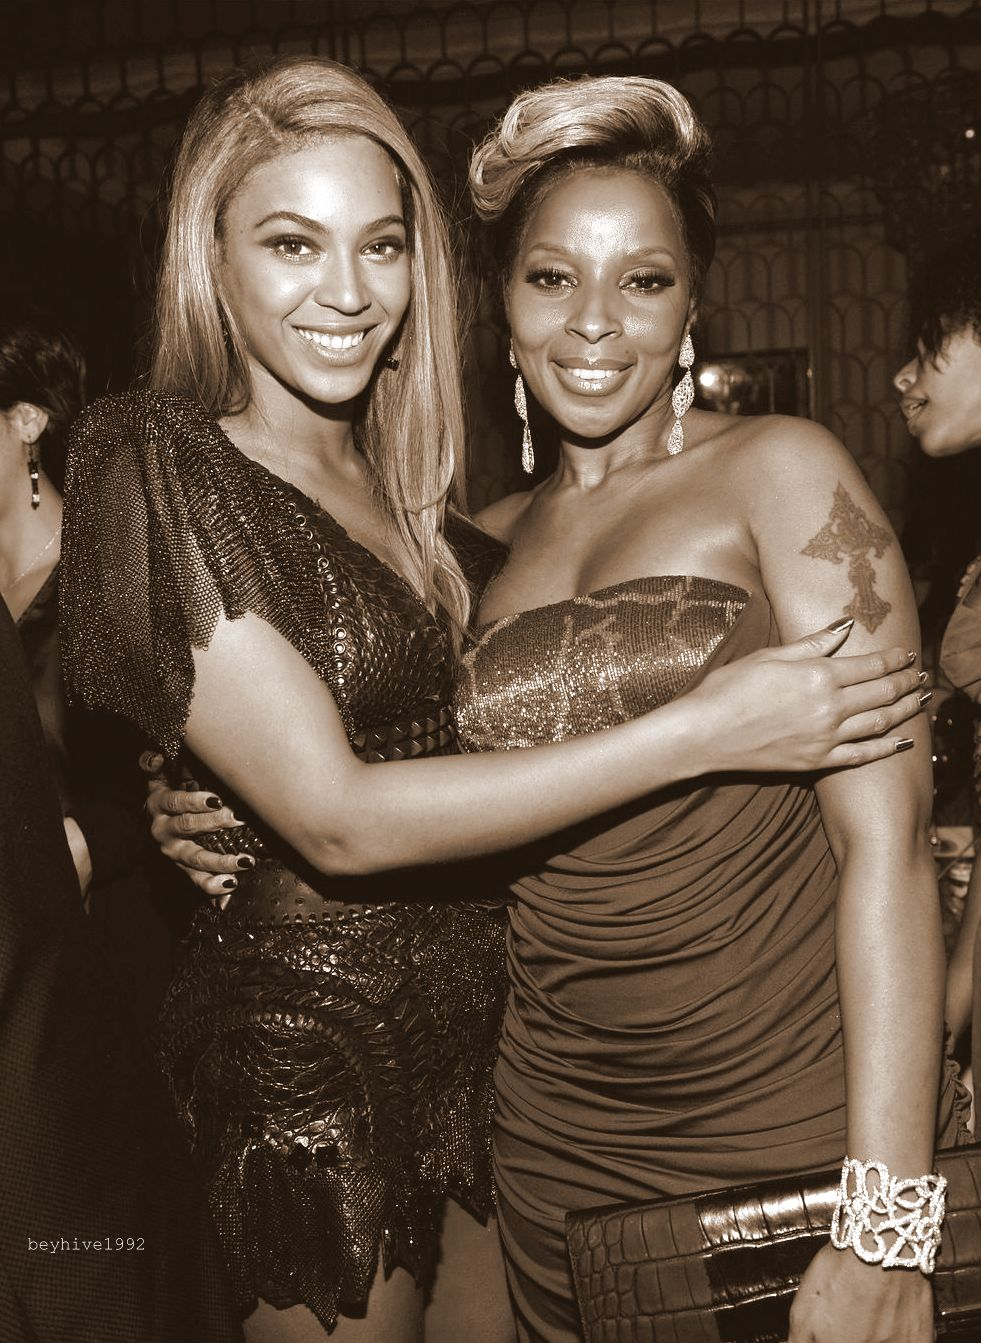 """beyhive1992: """"I love Beyonce to death. I respect her, the upmost highest"""" Mary J Blige on Beyonce"""